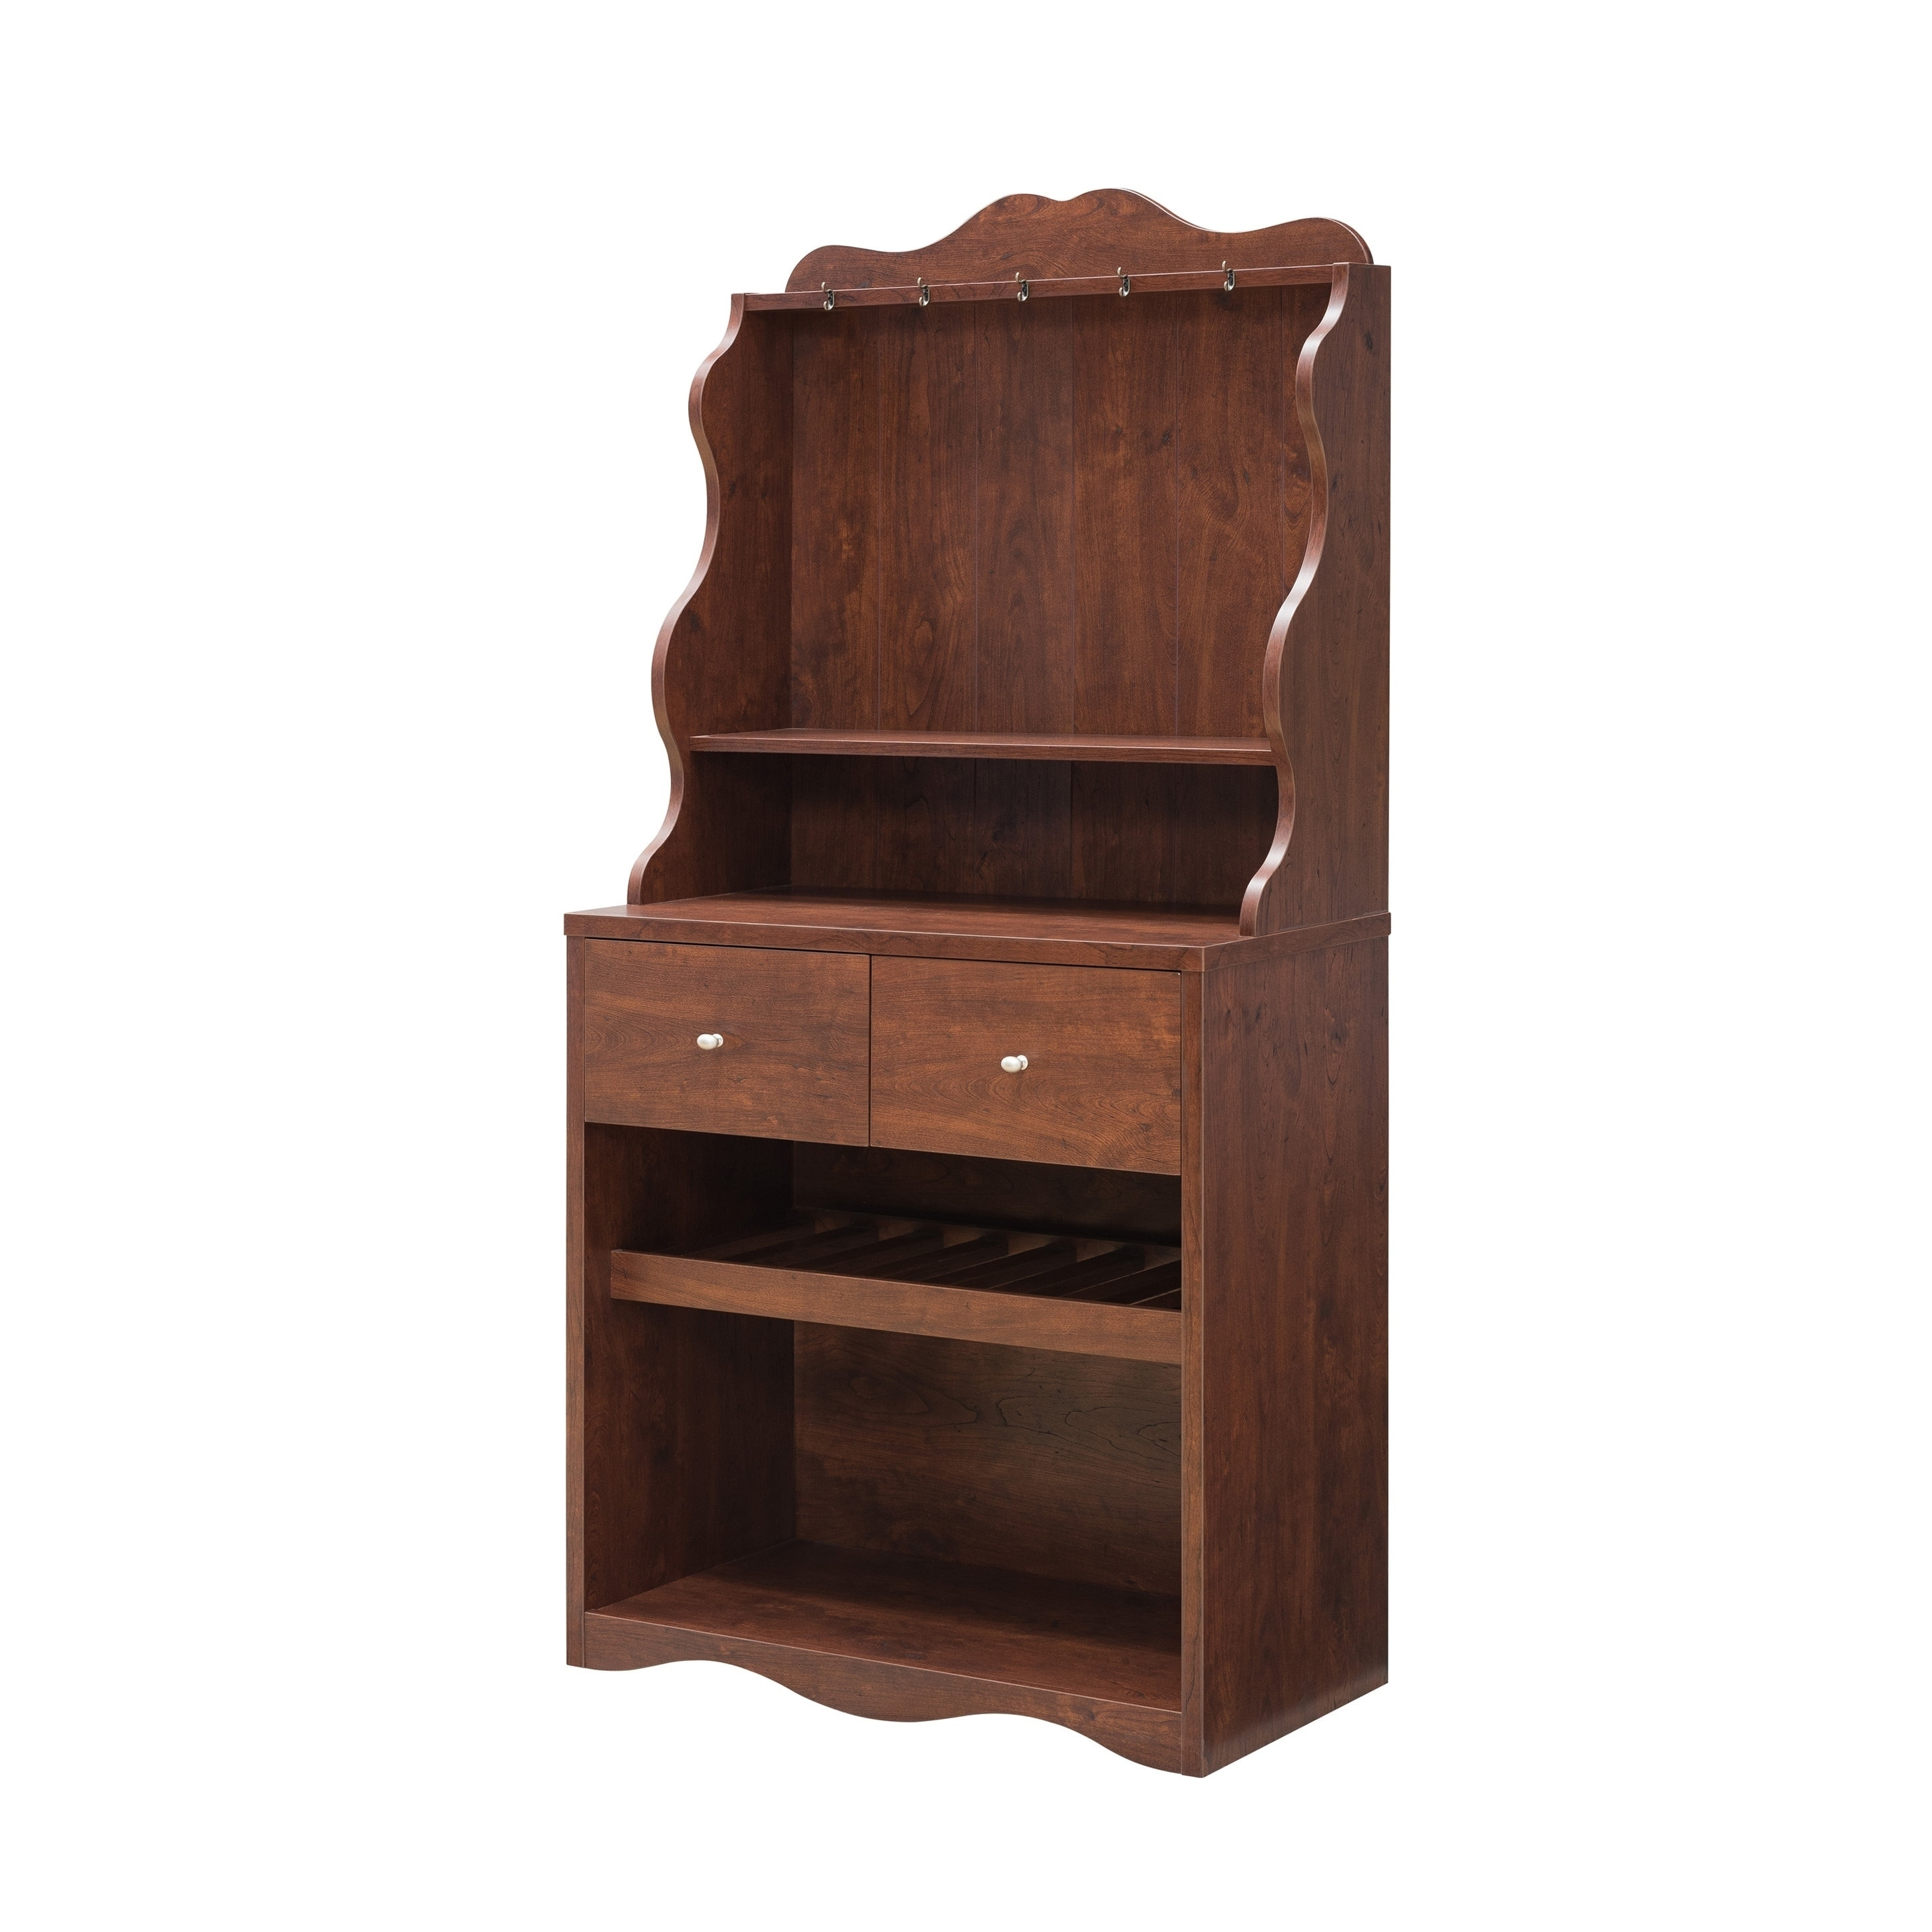 Shop Furniture Of America Melliers Rustic Kitchen Cabinet With Wine